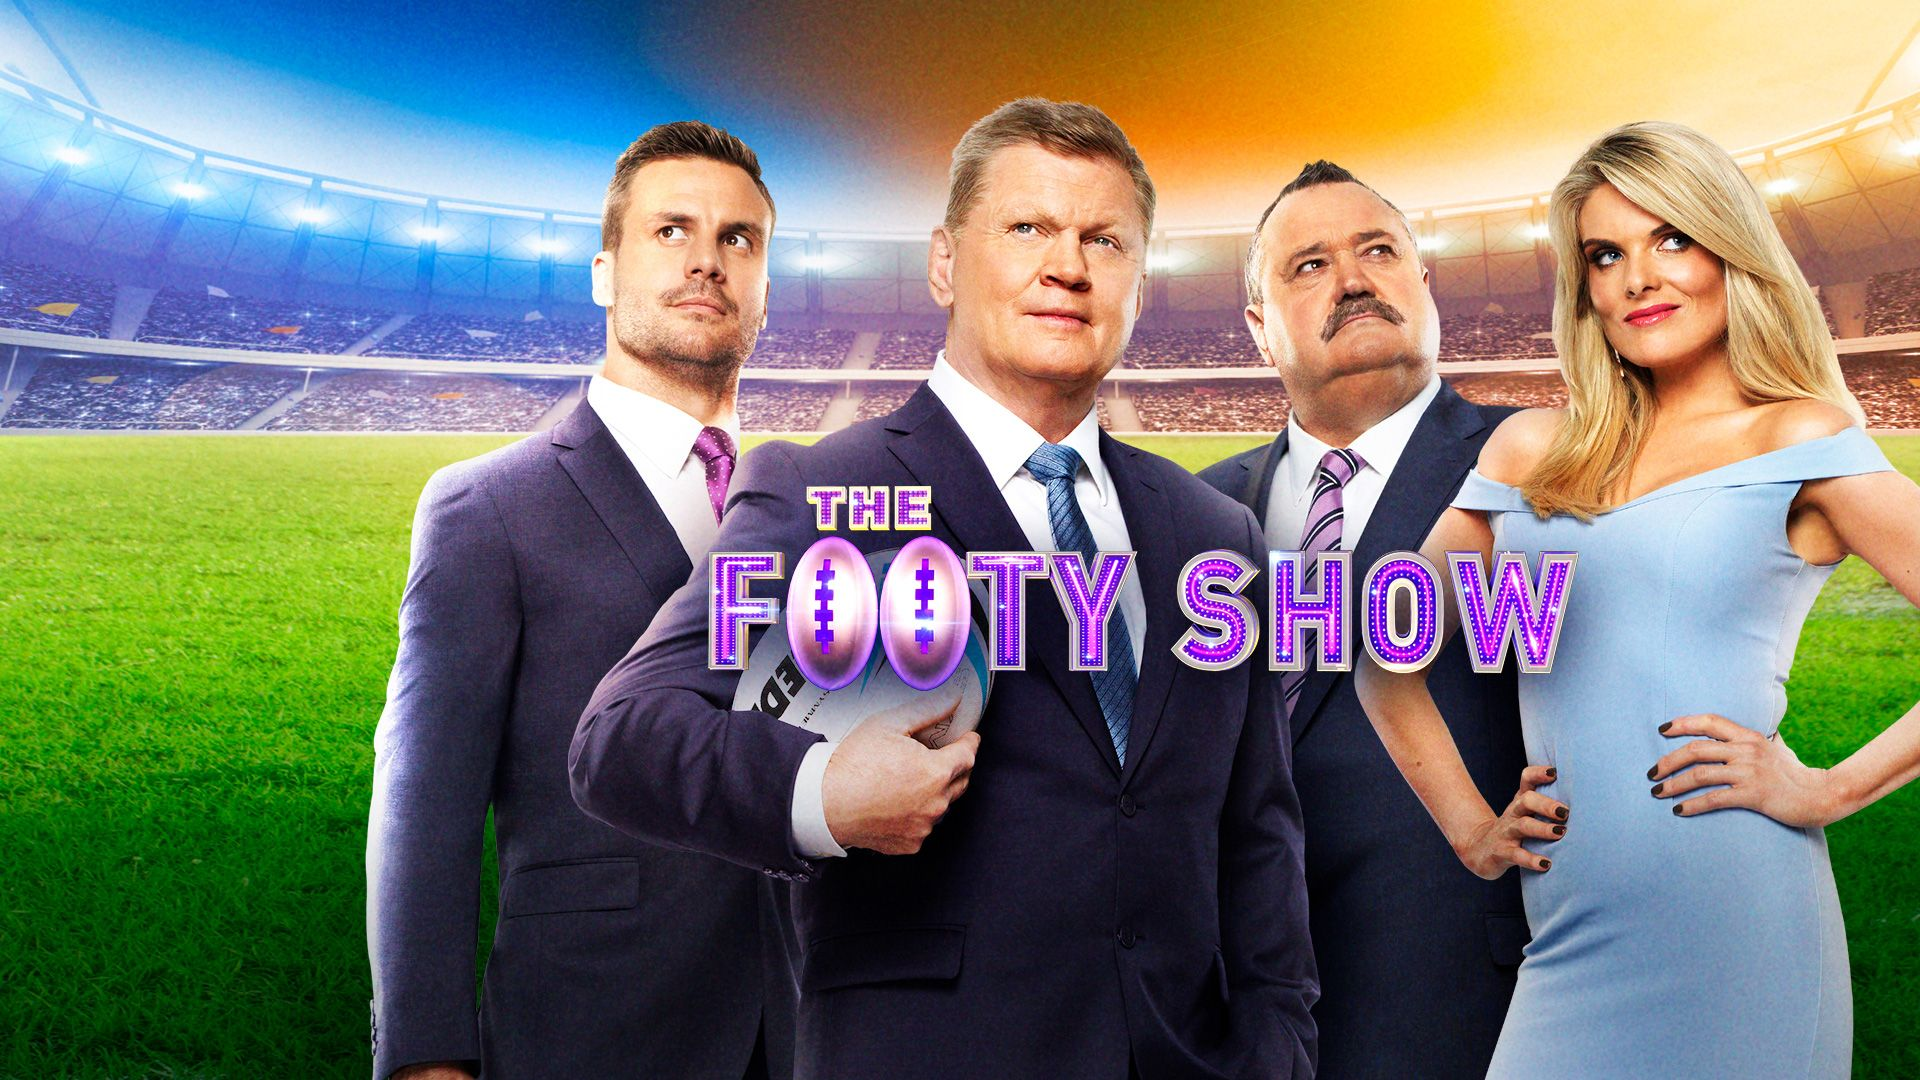 the footy show - photo #19